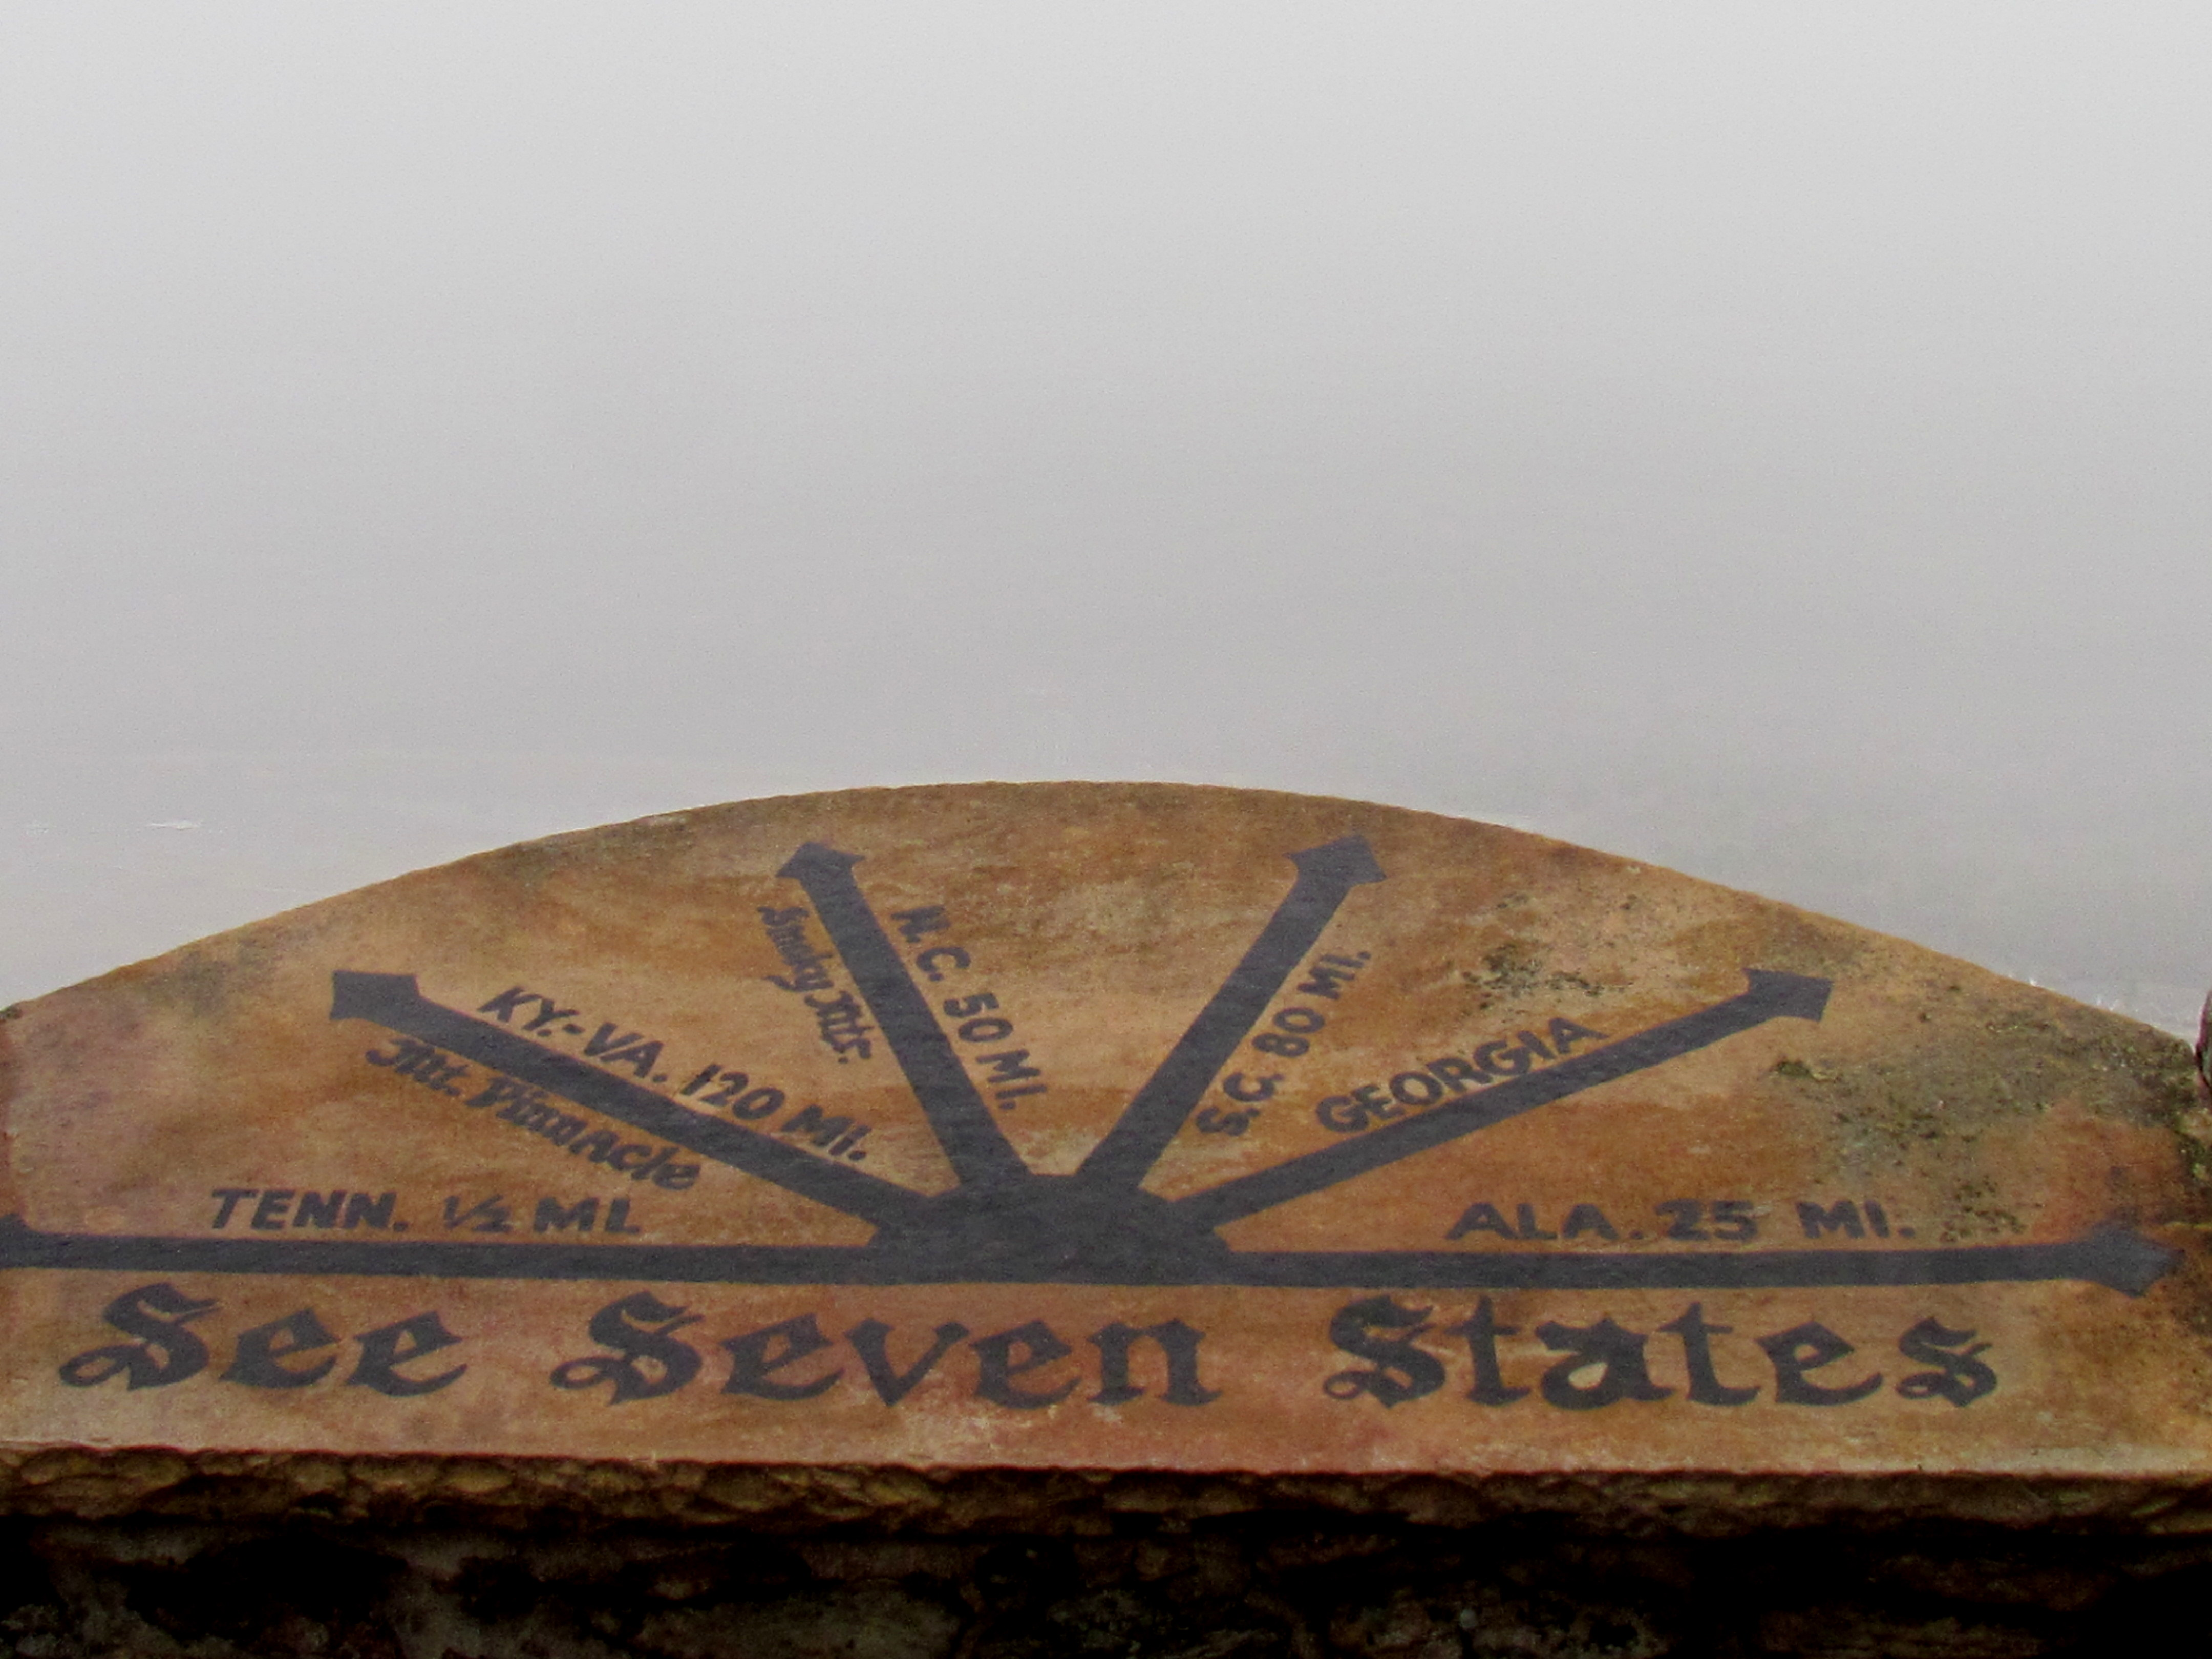 Zero visibility at the marker on top of Lookout Mountain, Chattanooga, TN